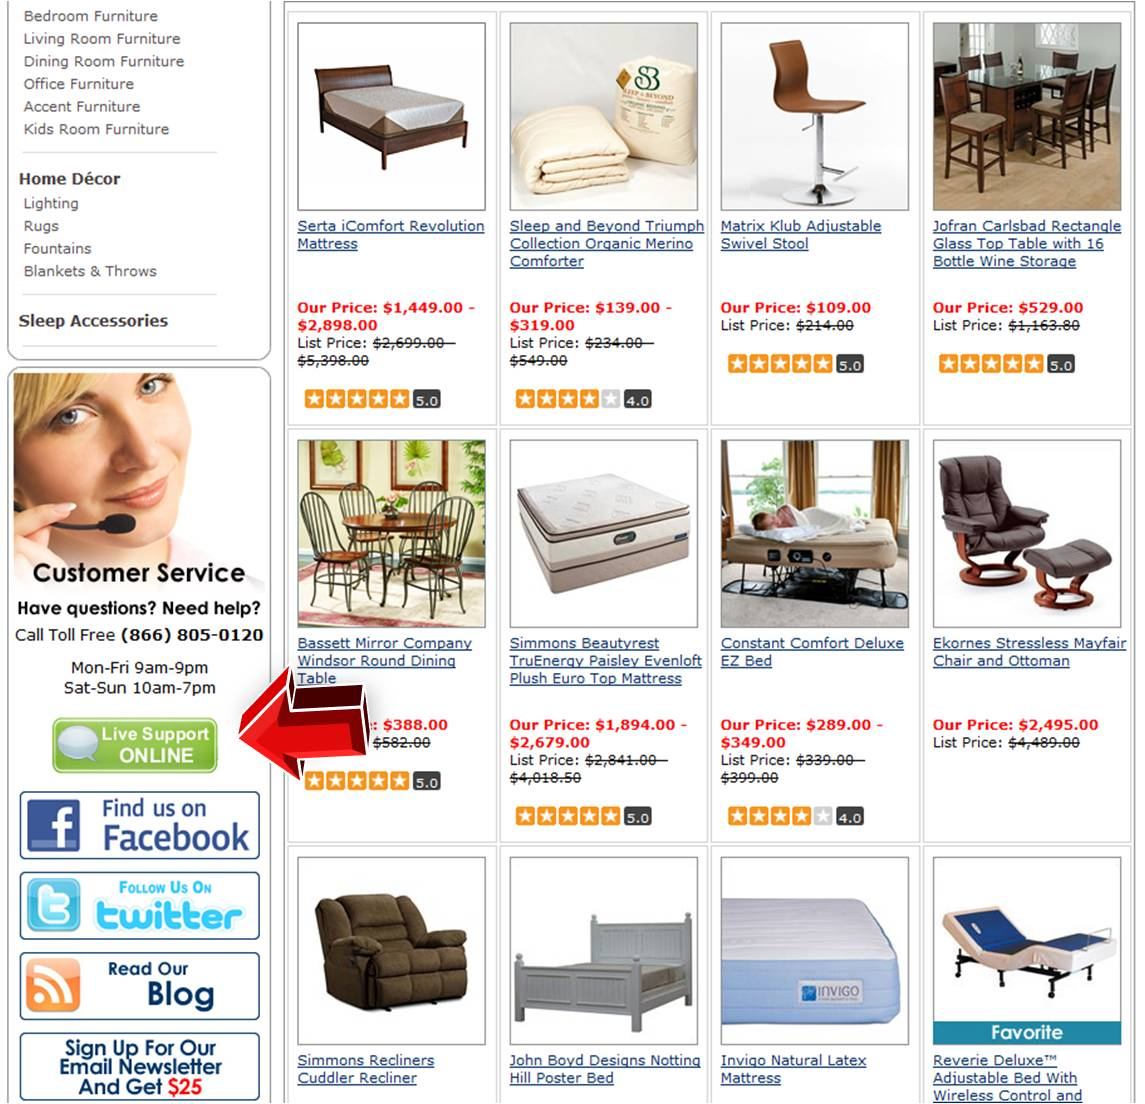 Support hose store online coupon code